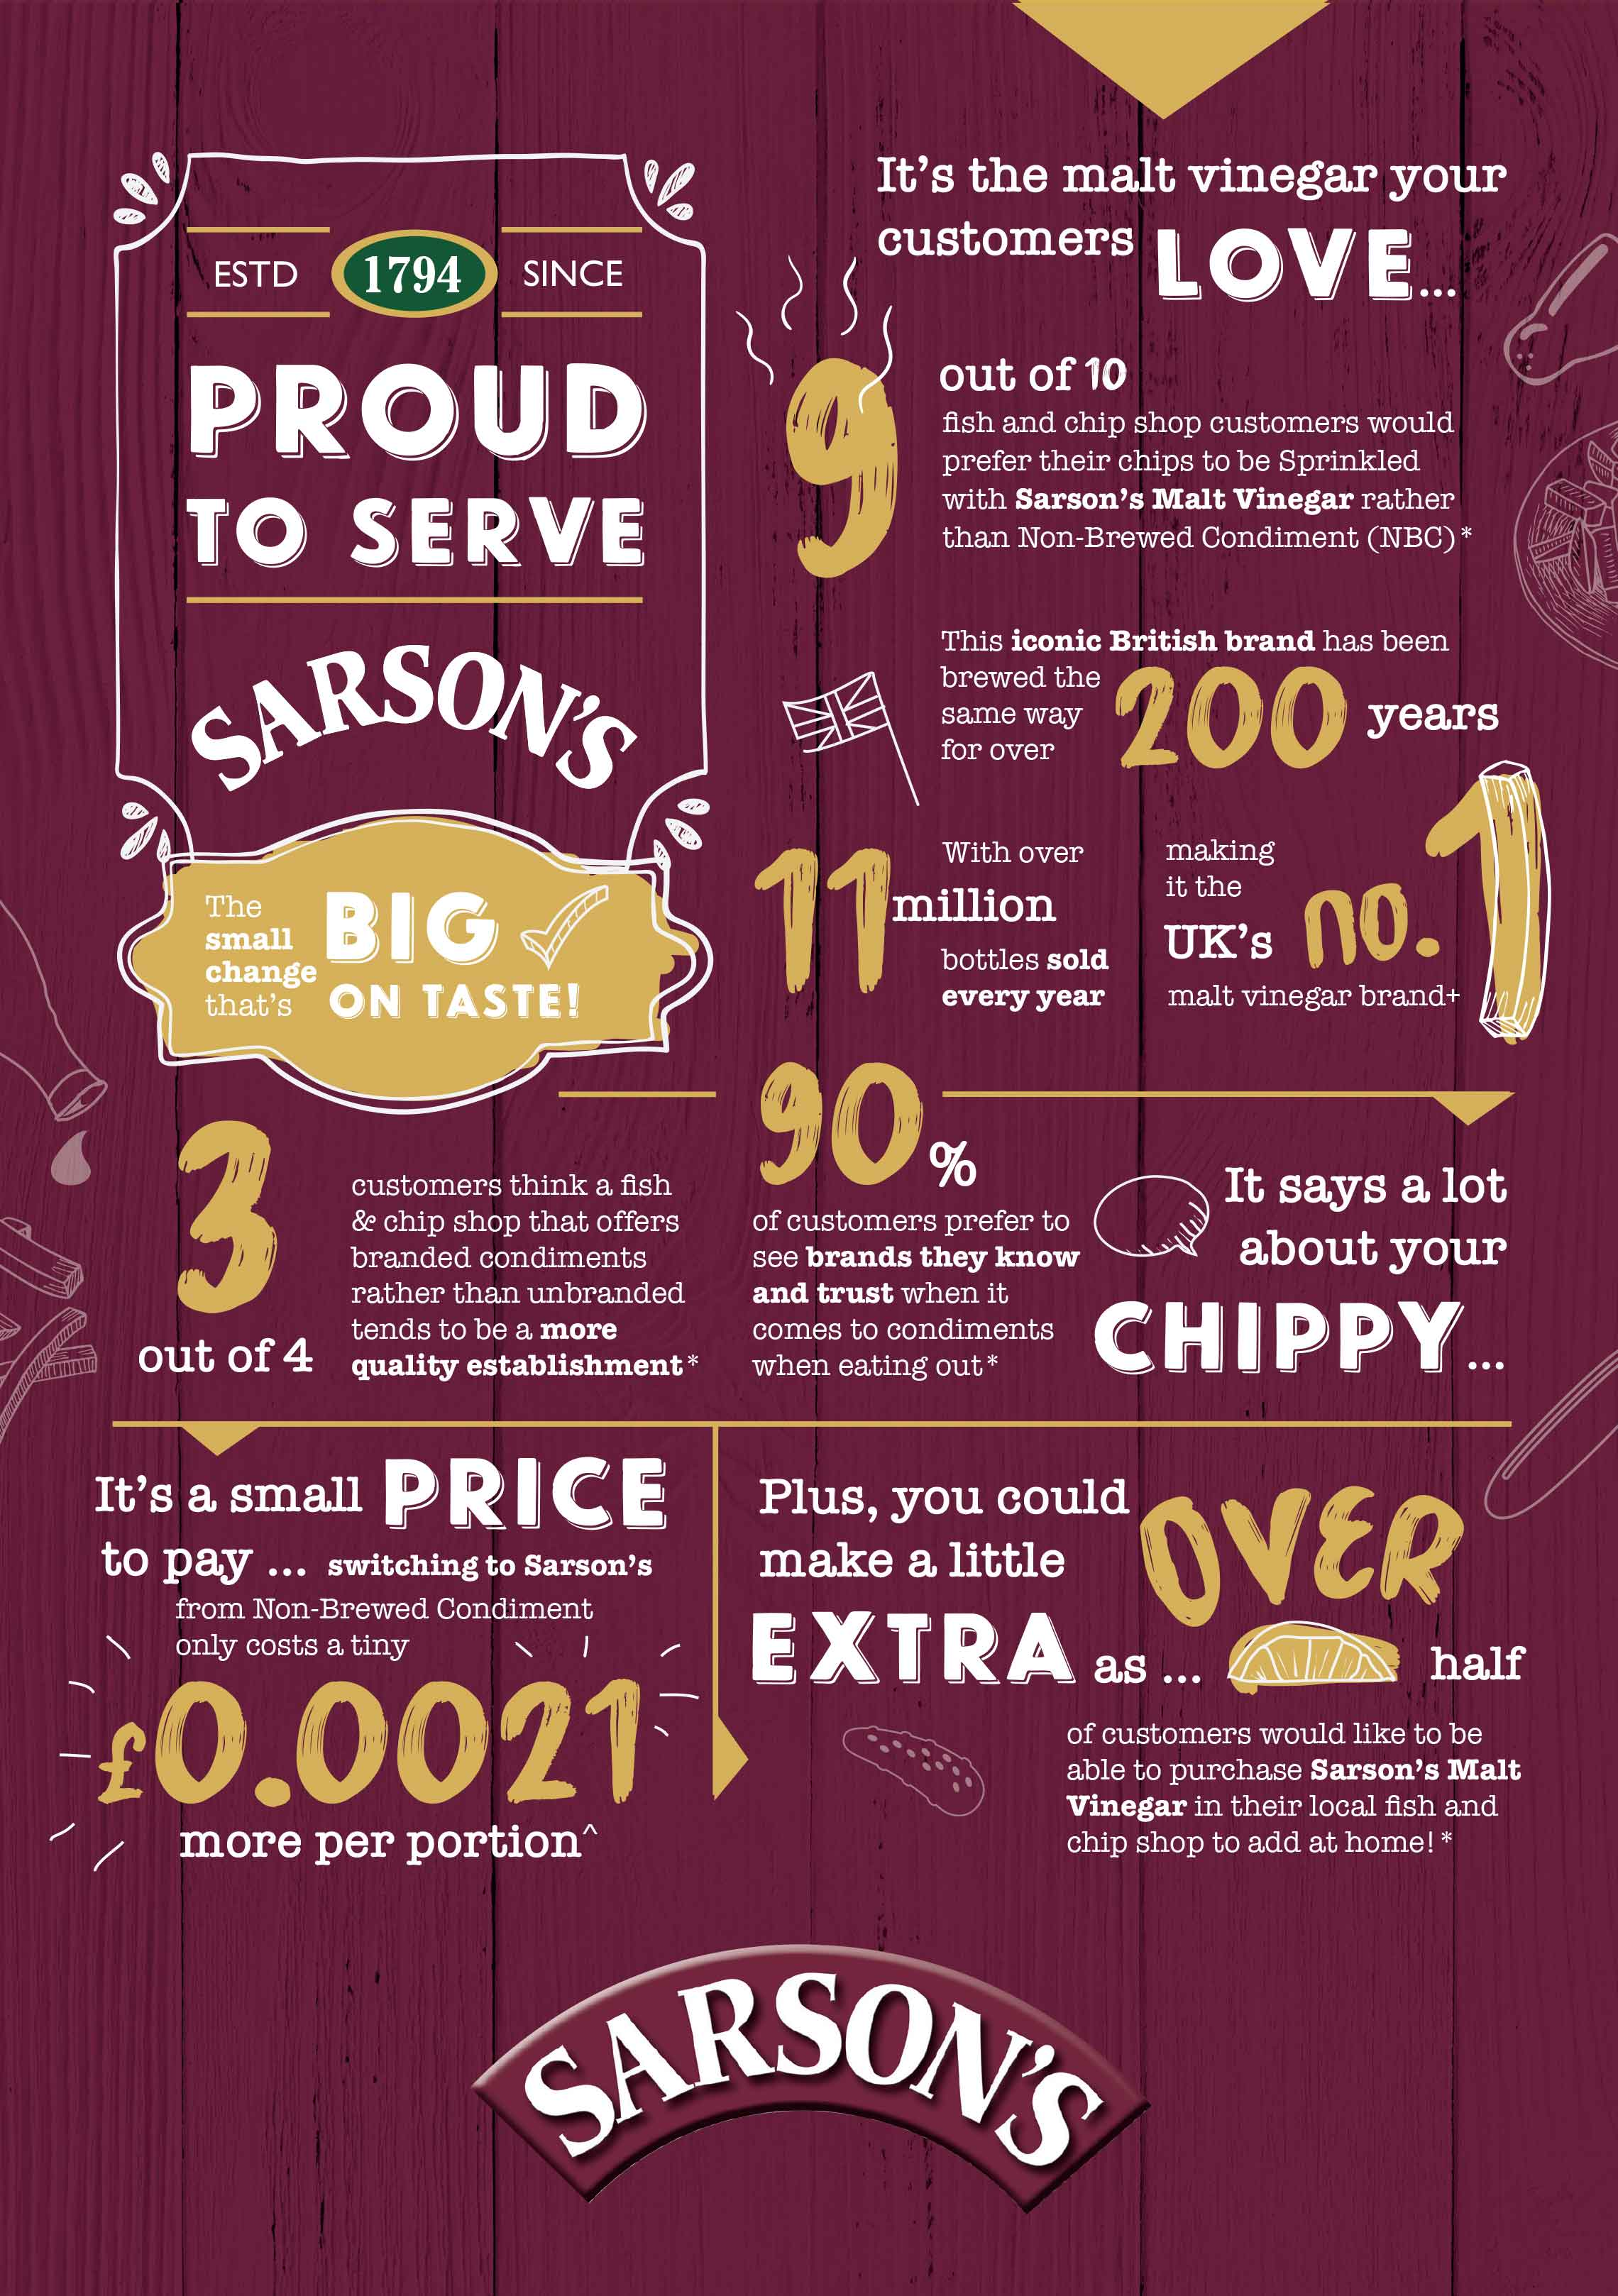 Switch to Sarson's - Proud to Serve Quality Fish and Chips Shops of Great Britain - Infographic